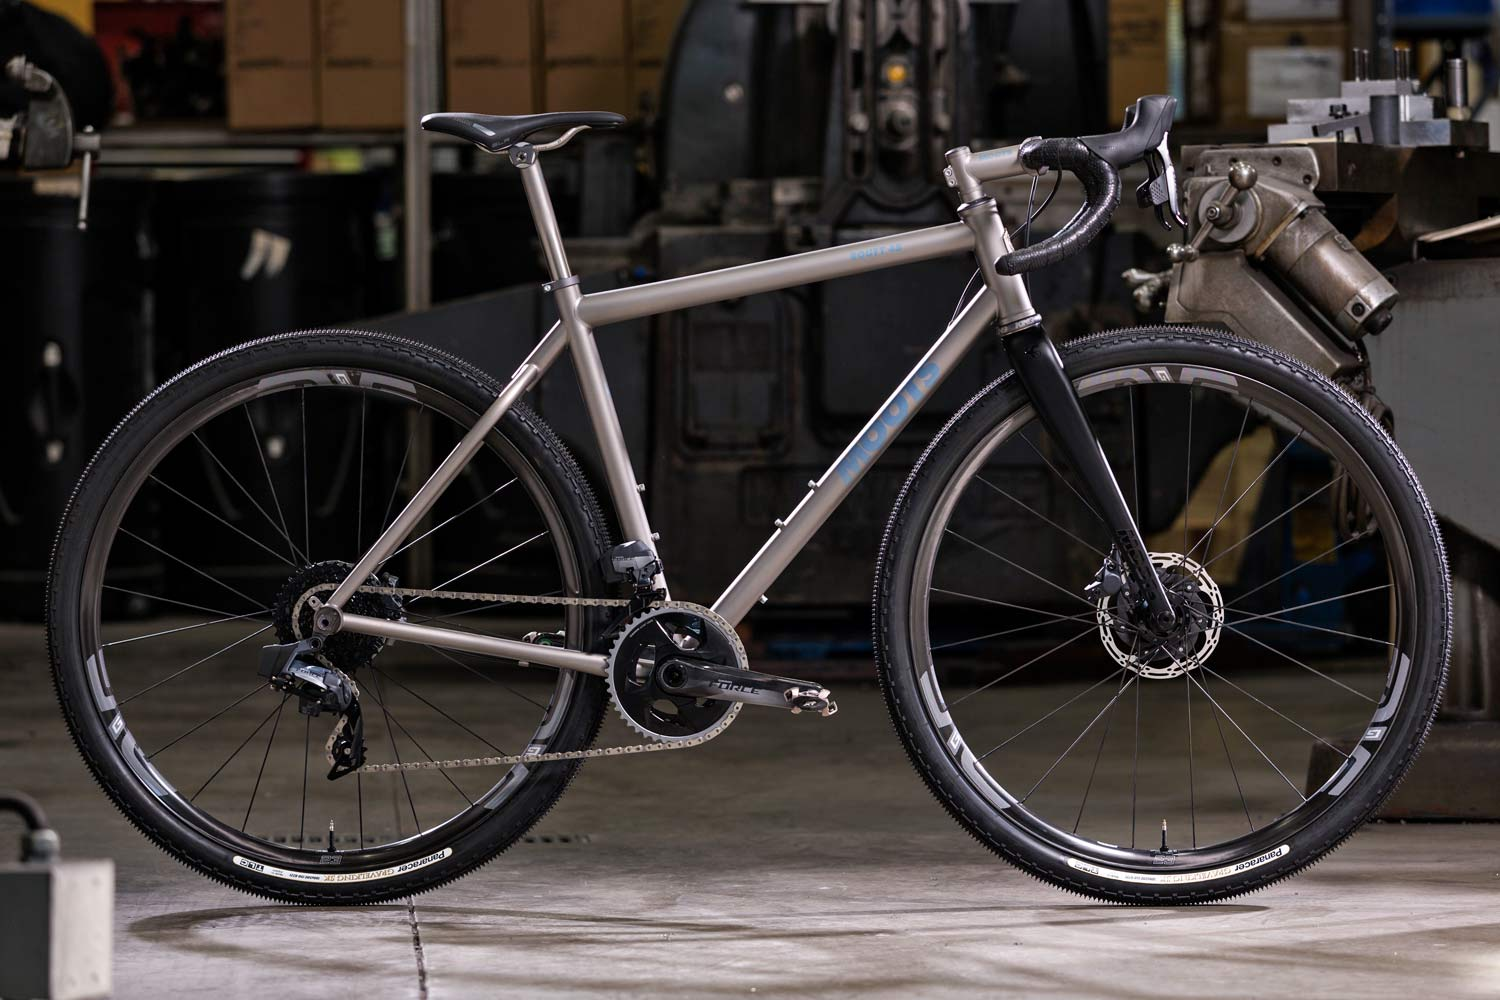 2021 Moots Routt 45, RSL & YBB titanium gravel bike family goes wider & further